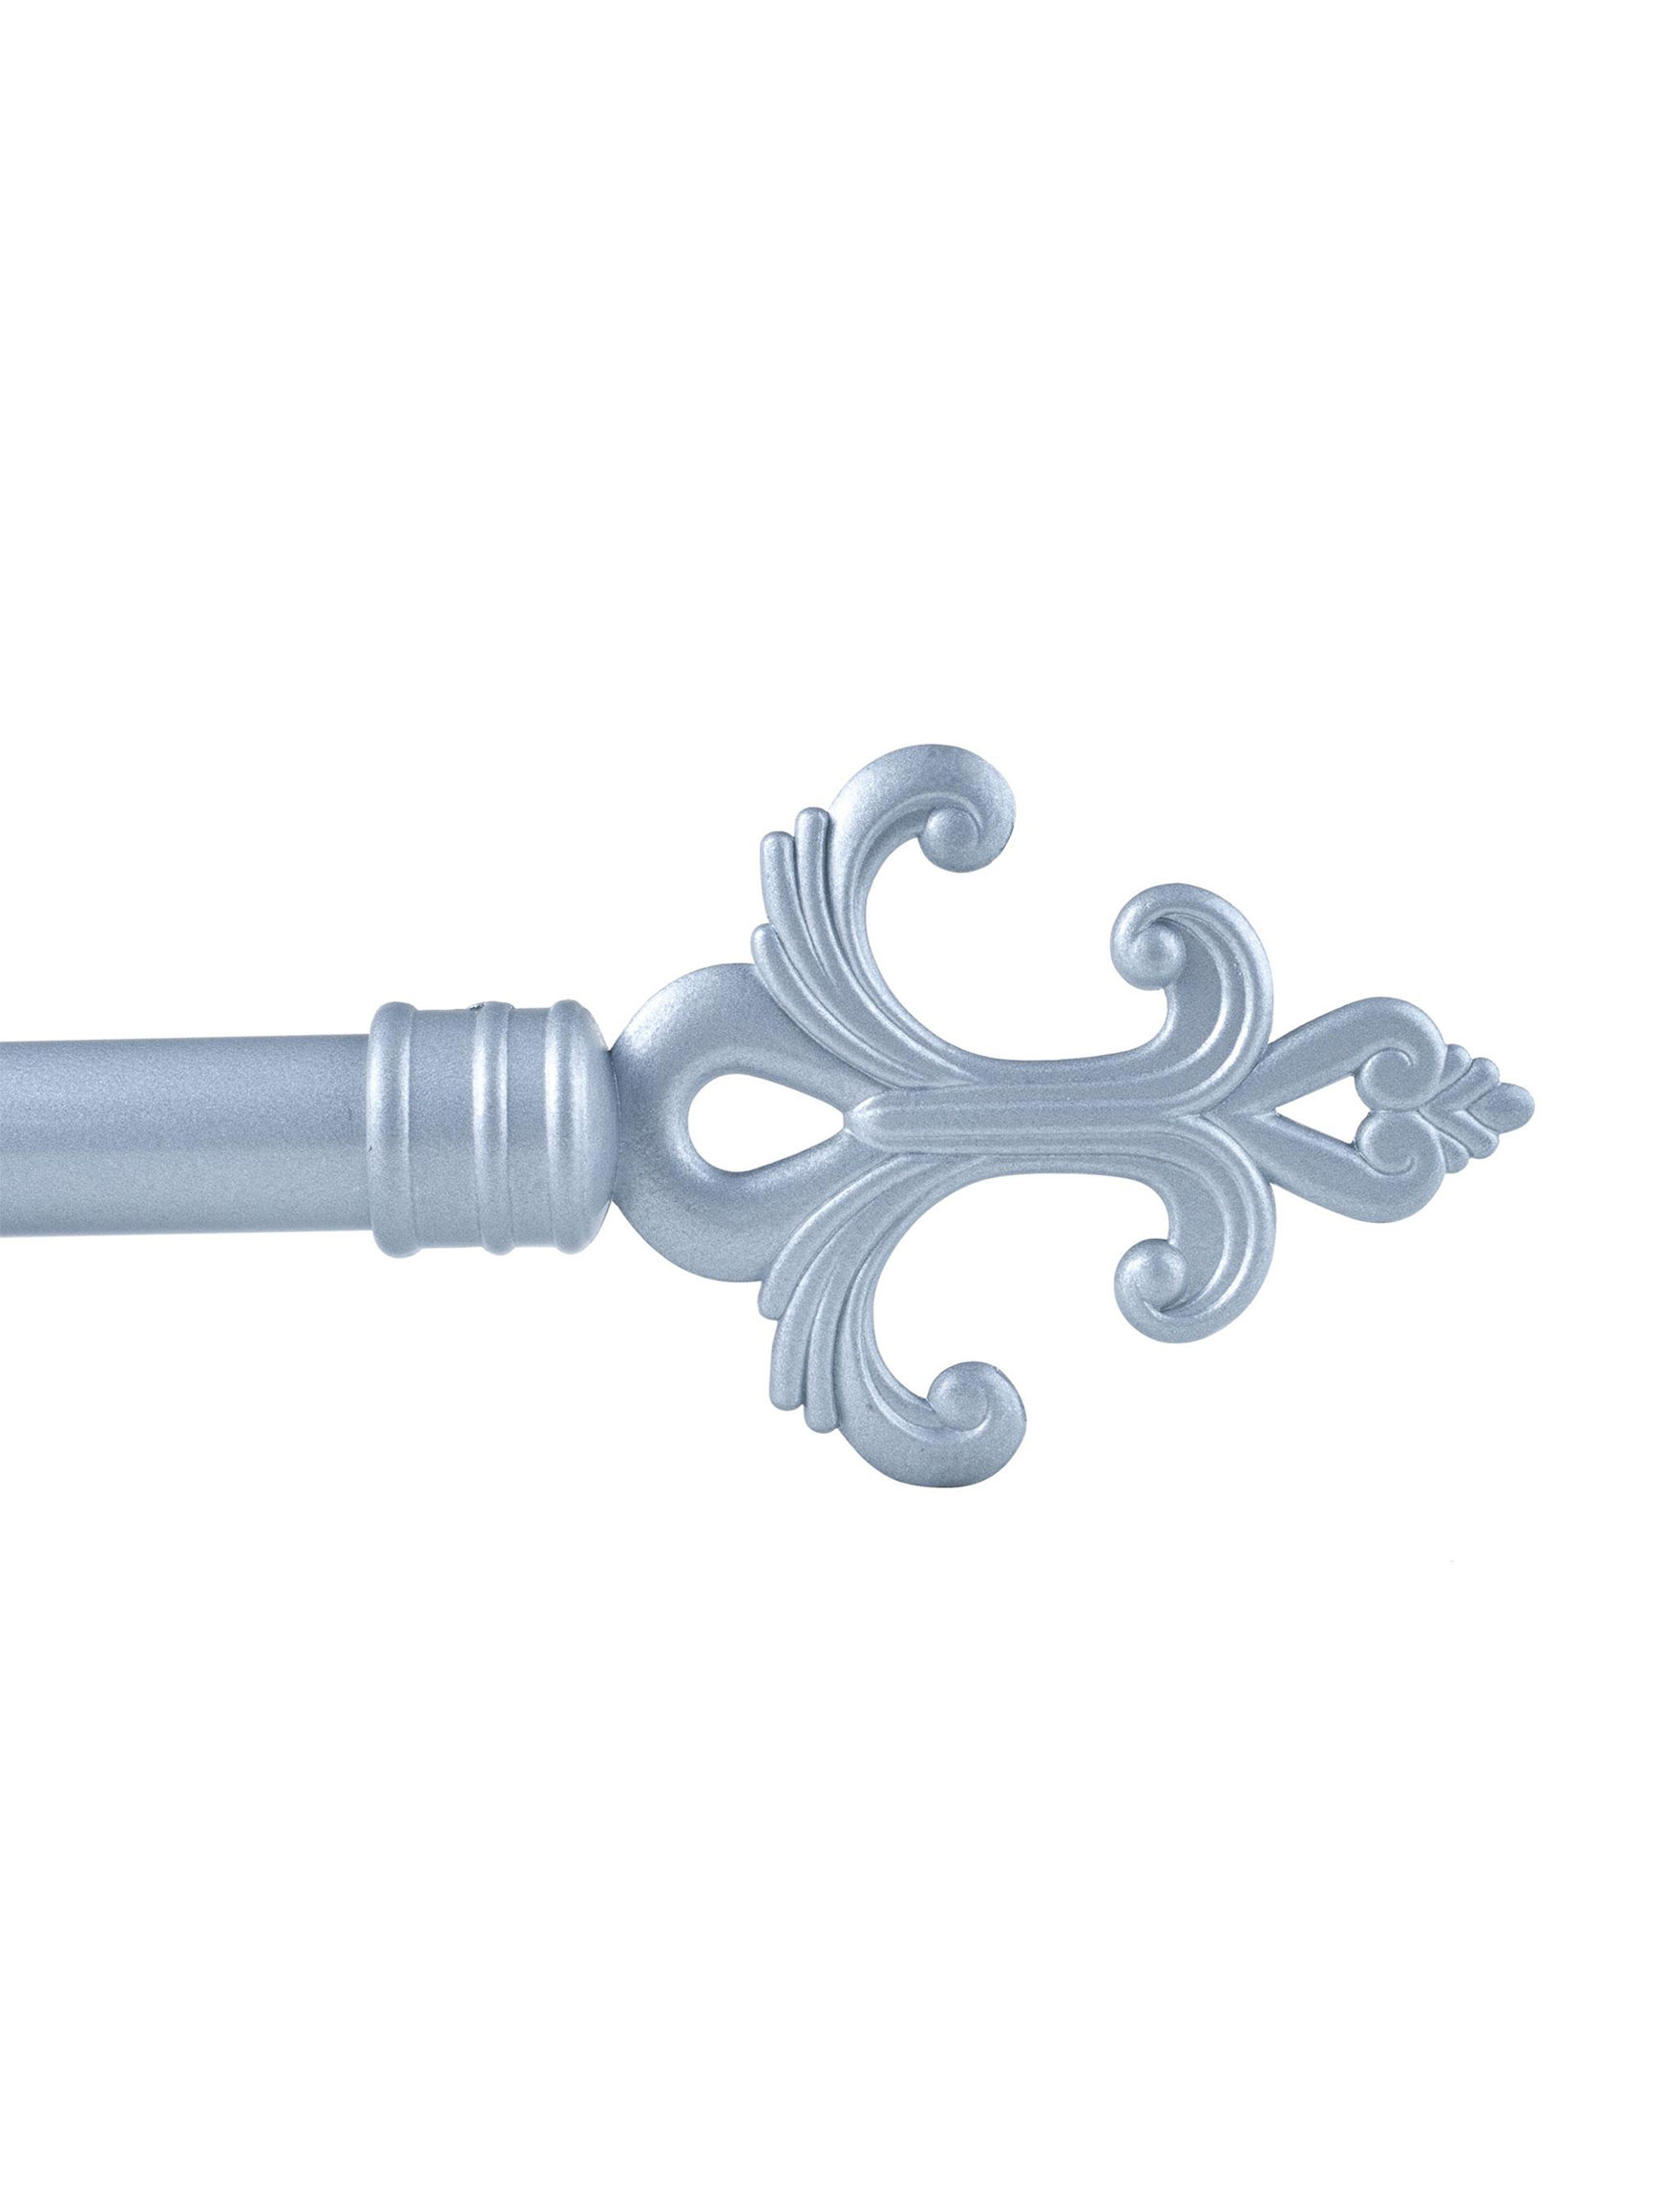 Lavish Home Silver Curtain Rods & Hardware Window Treatments